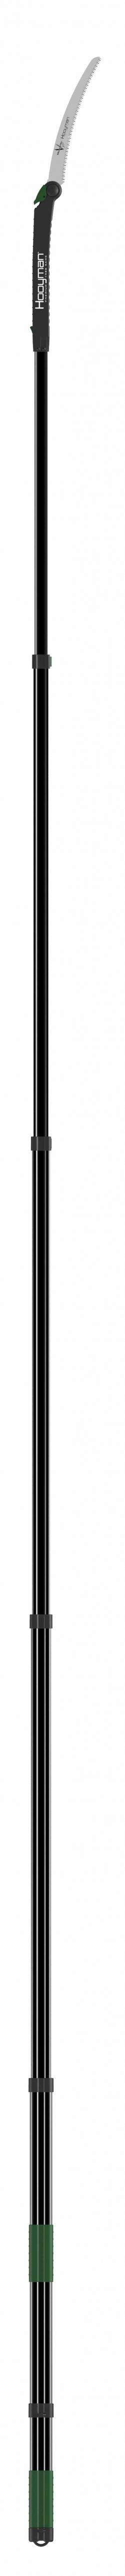 16 Foot Extendable Pole Saw - 655232 open MOCK 250x5145